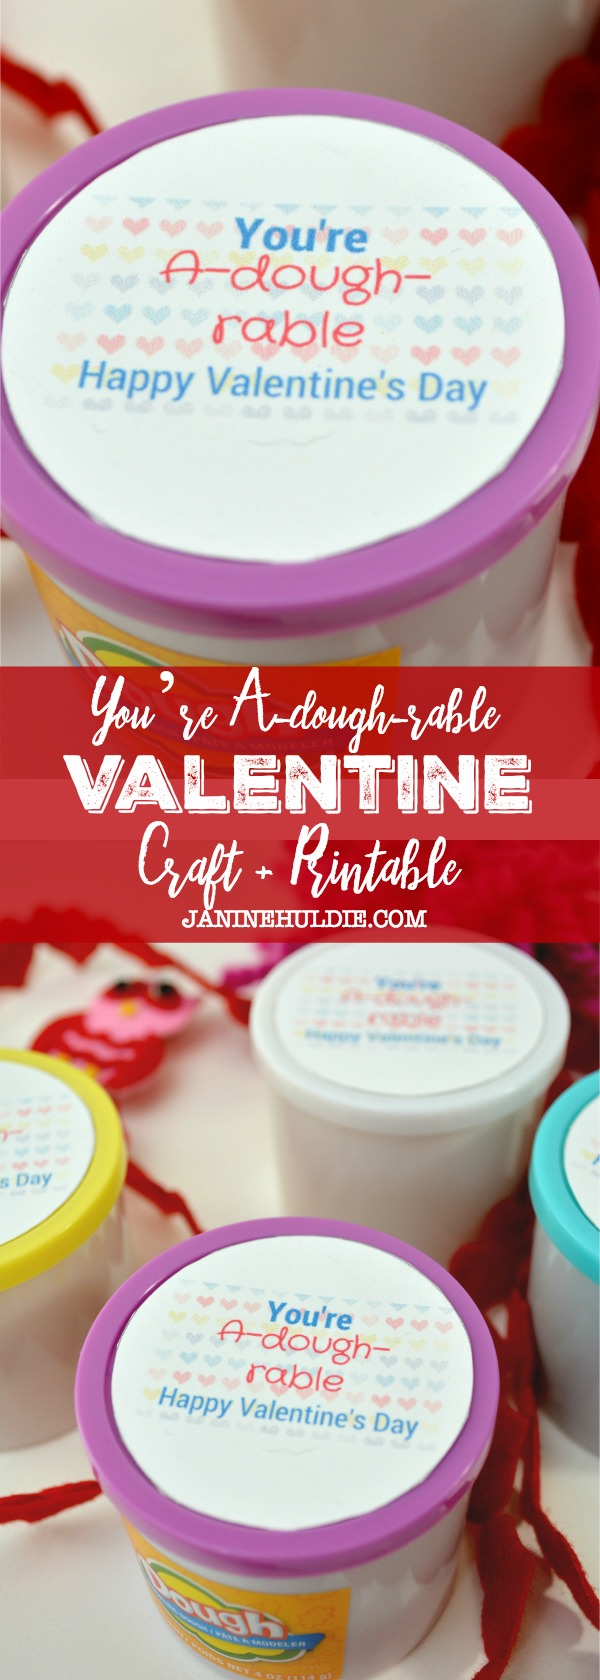 A-Dough-Rable Valentine, This Mom's Confessions